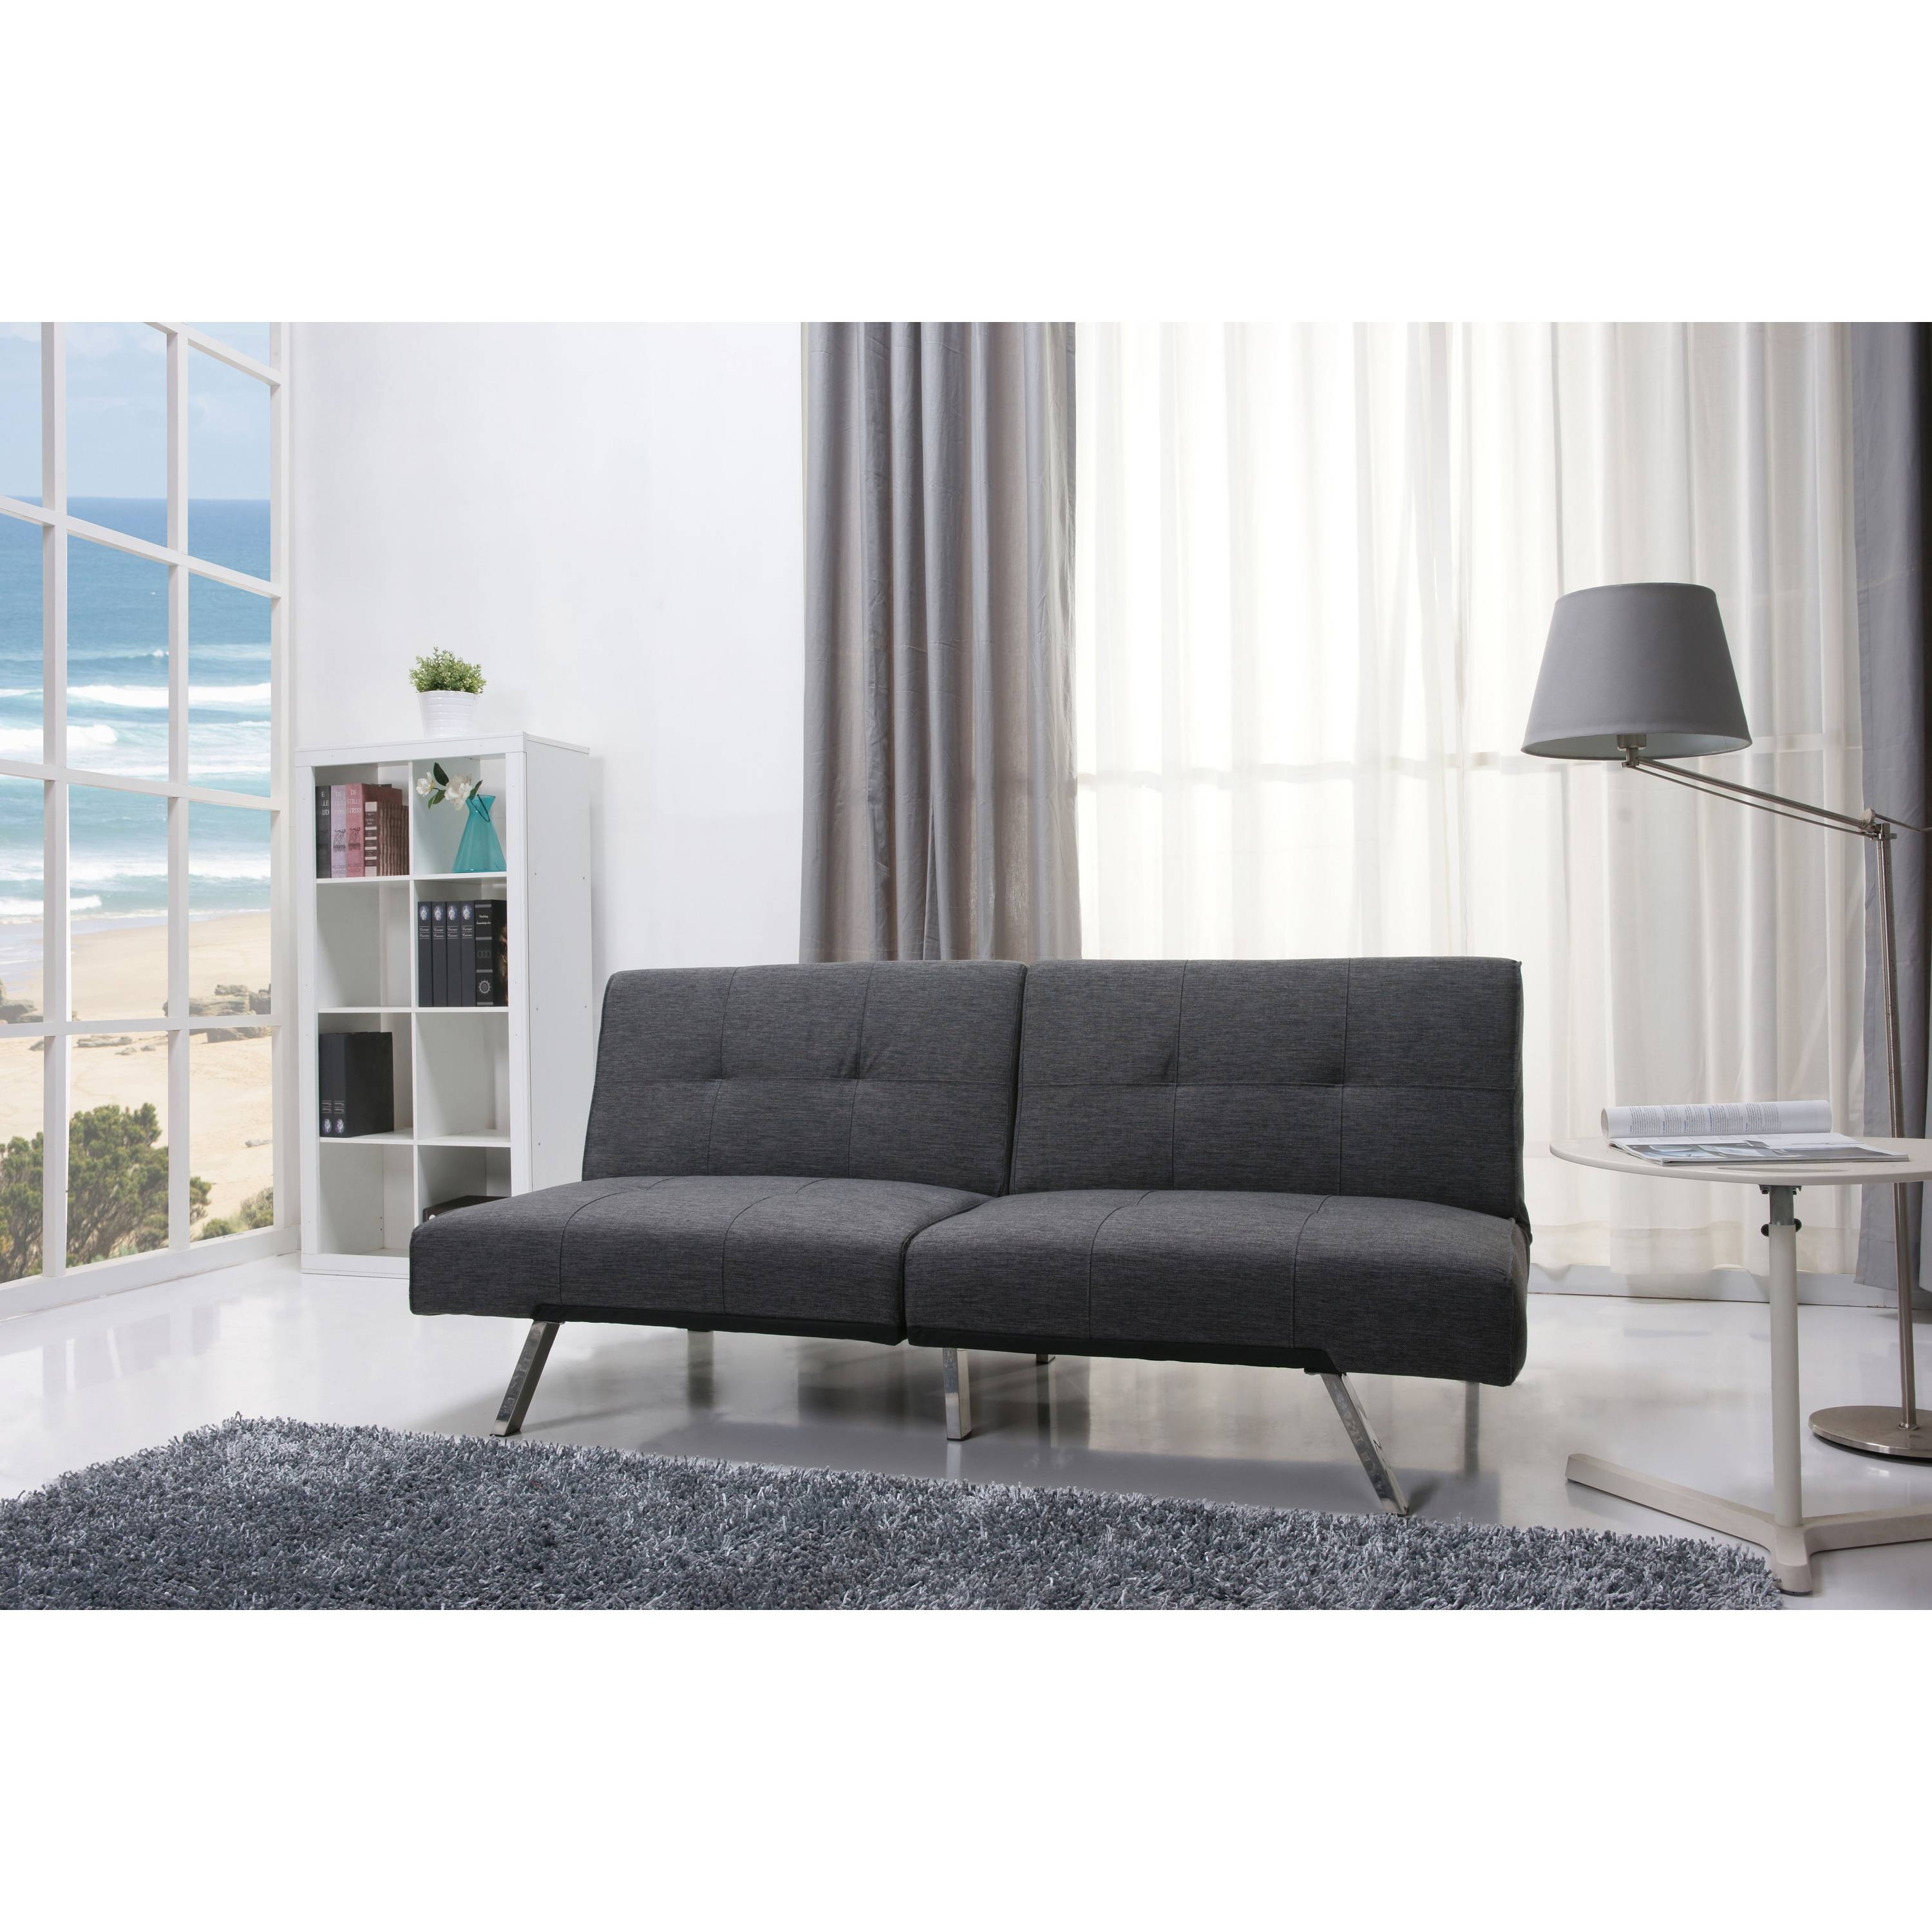 Mainstays Contempo Futon Sofa Bed 33 With Inside Beds